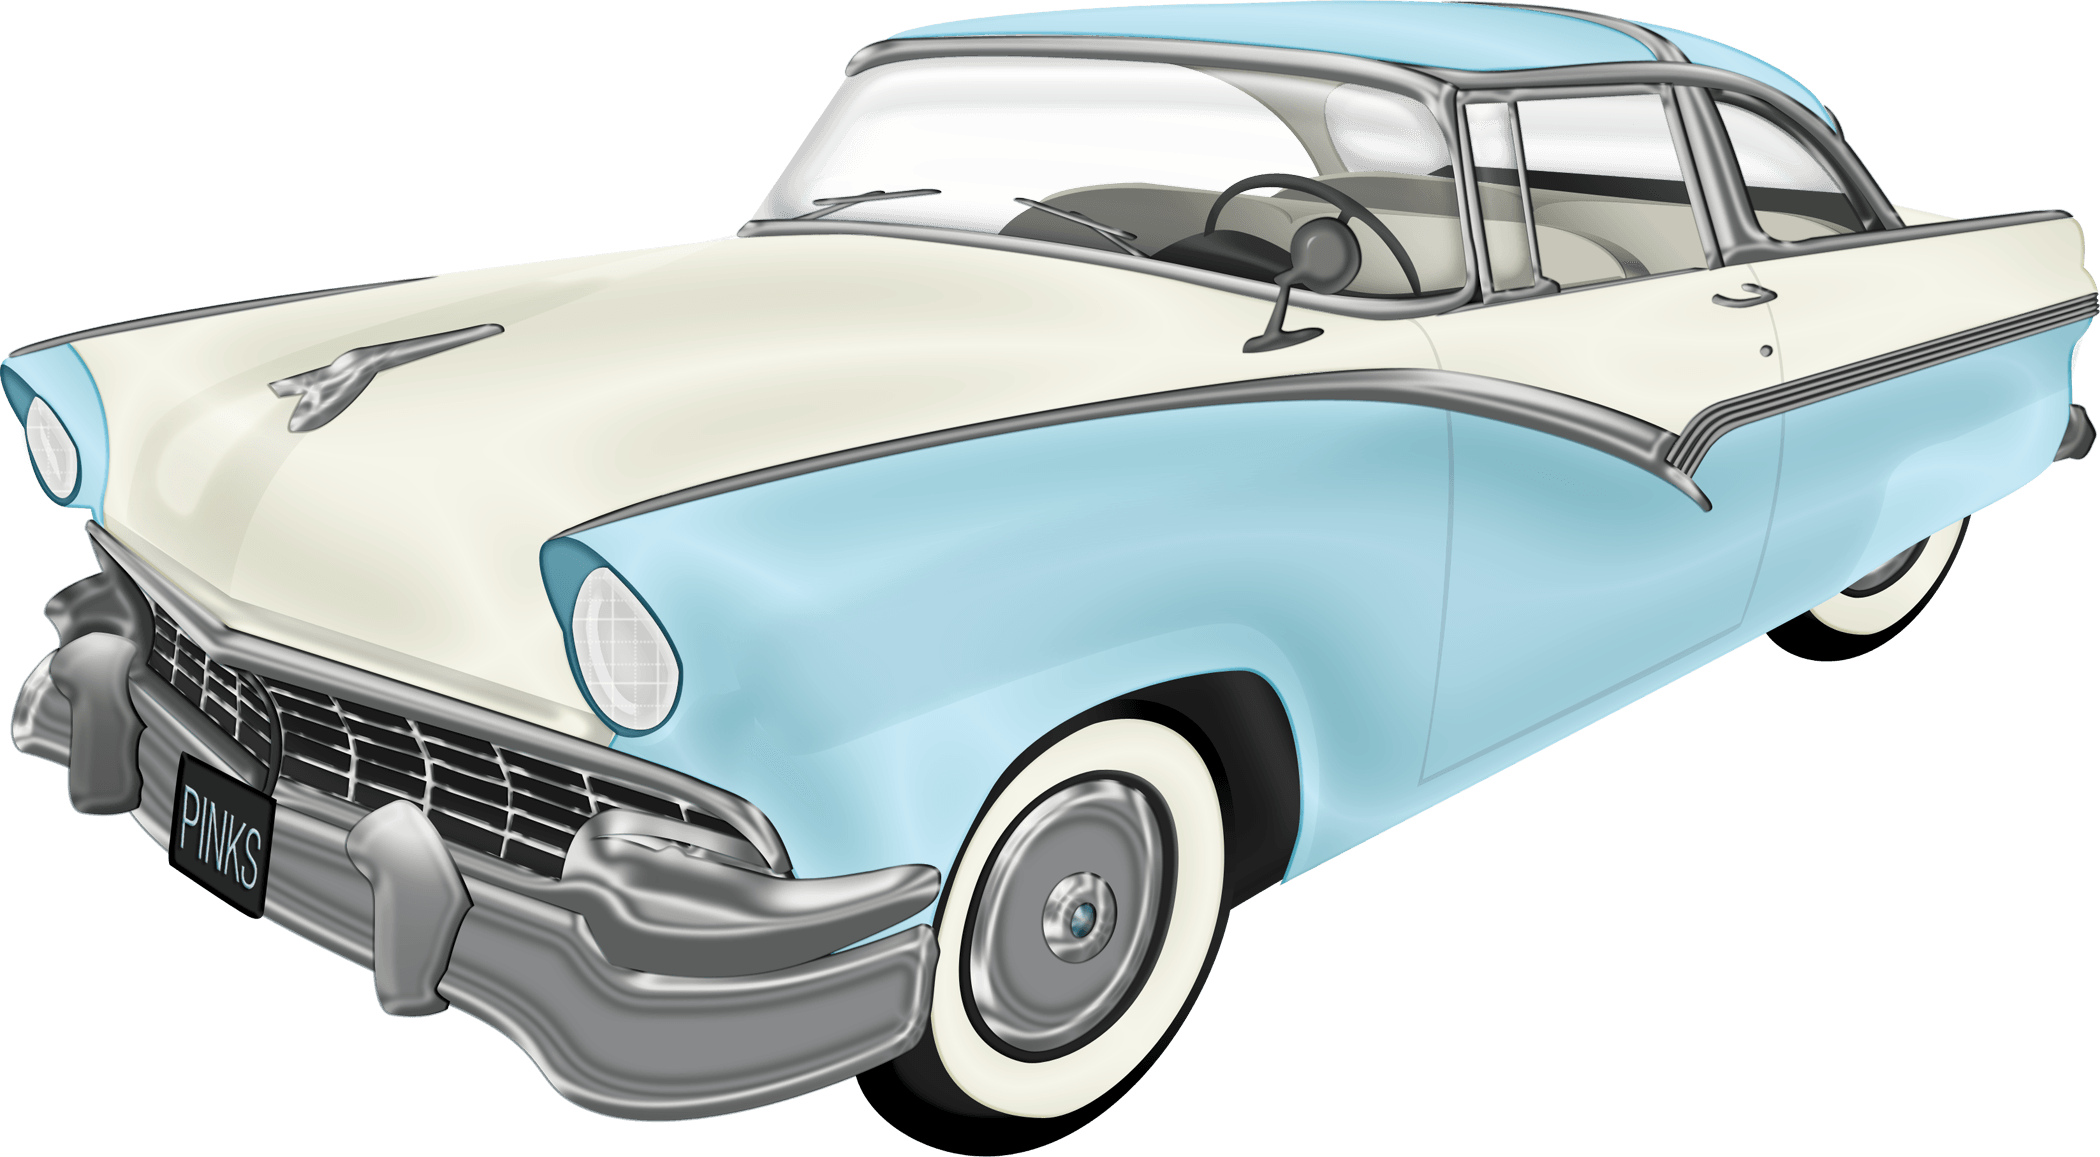 Antique car clipart free clipart transparent Antique Car PNG HD Transparent Antique Car HD.PNG Images. | PlusPNG clipart transparent